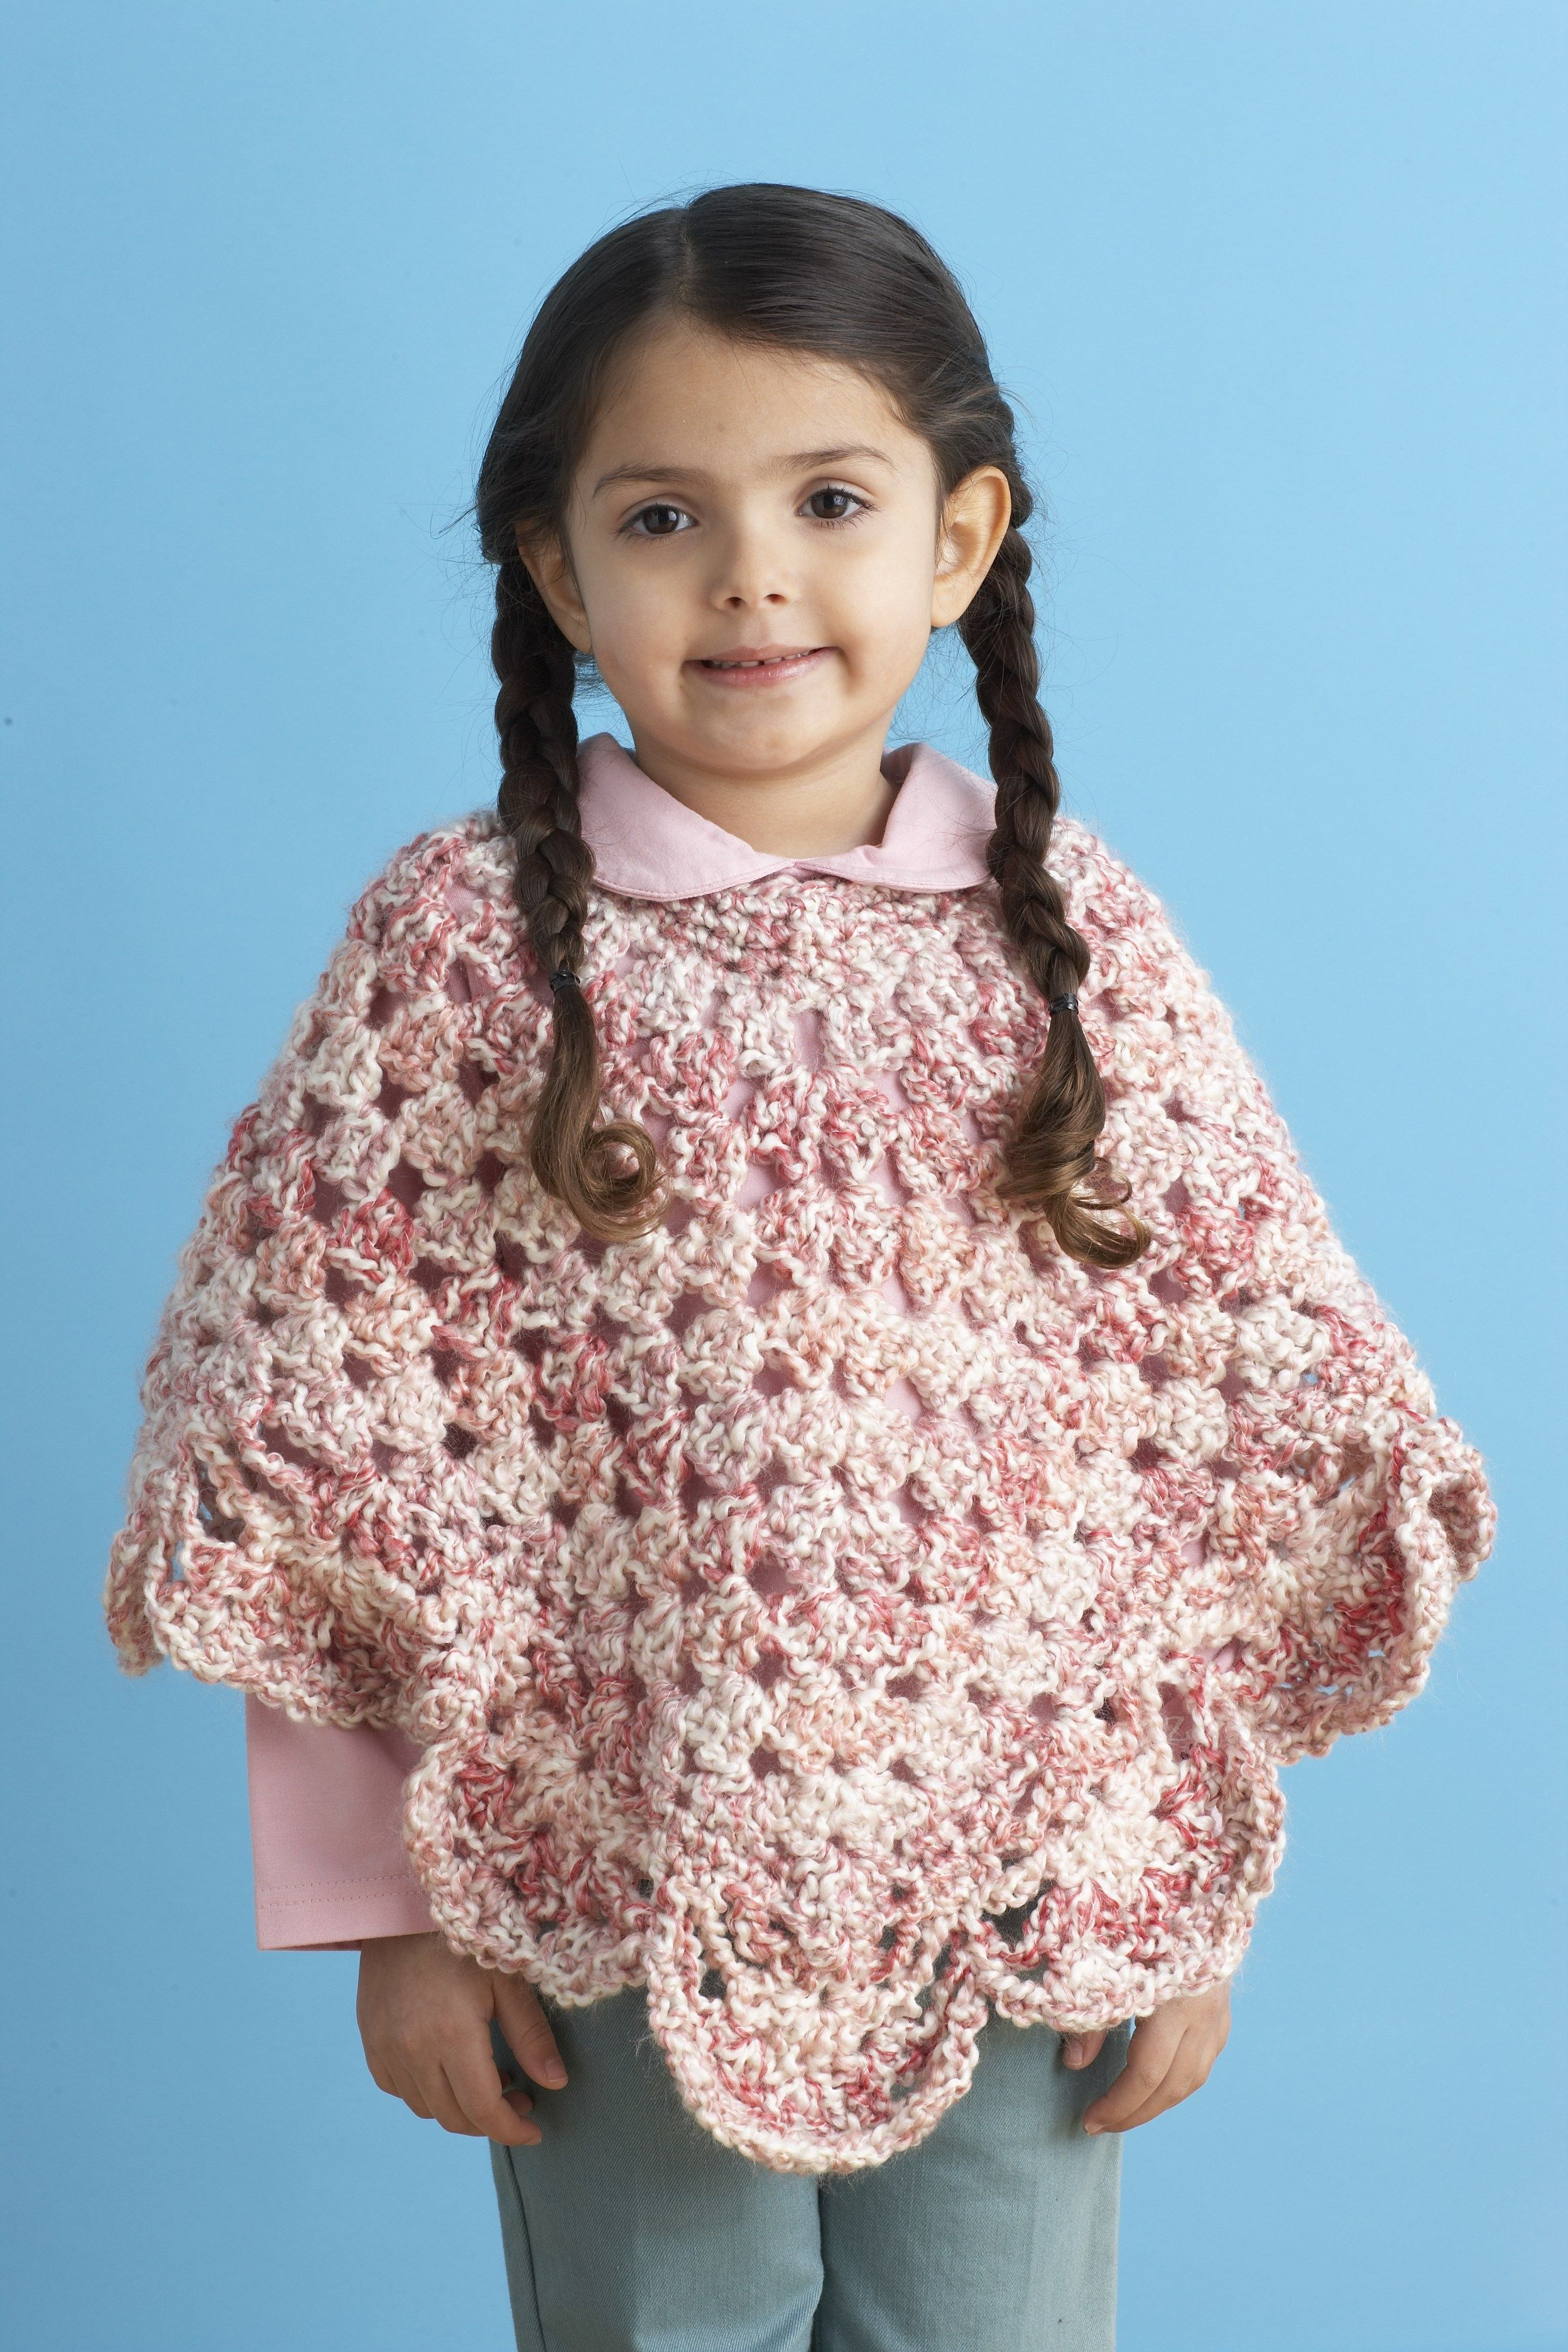 Crochet poncho patterns and styles free online poncho crochet crochet poncho patterns and styles free online poncho crochet patterns patterns preceded by an plus bankloansurffo Image collections